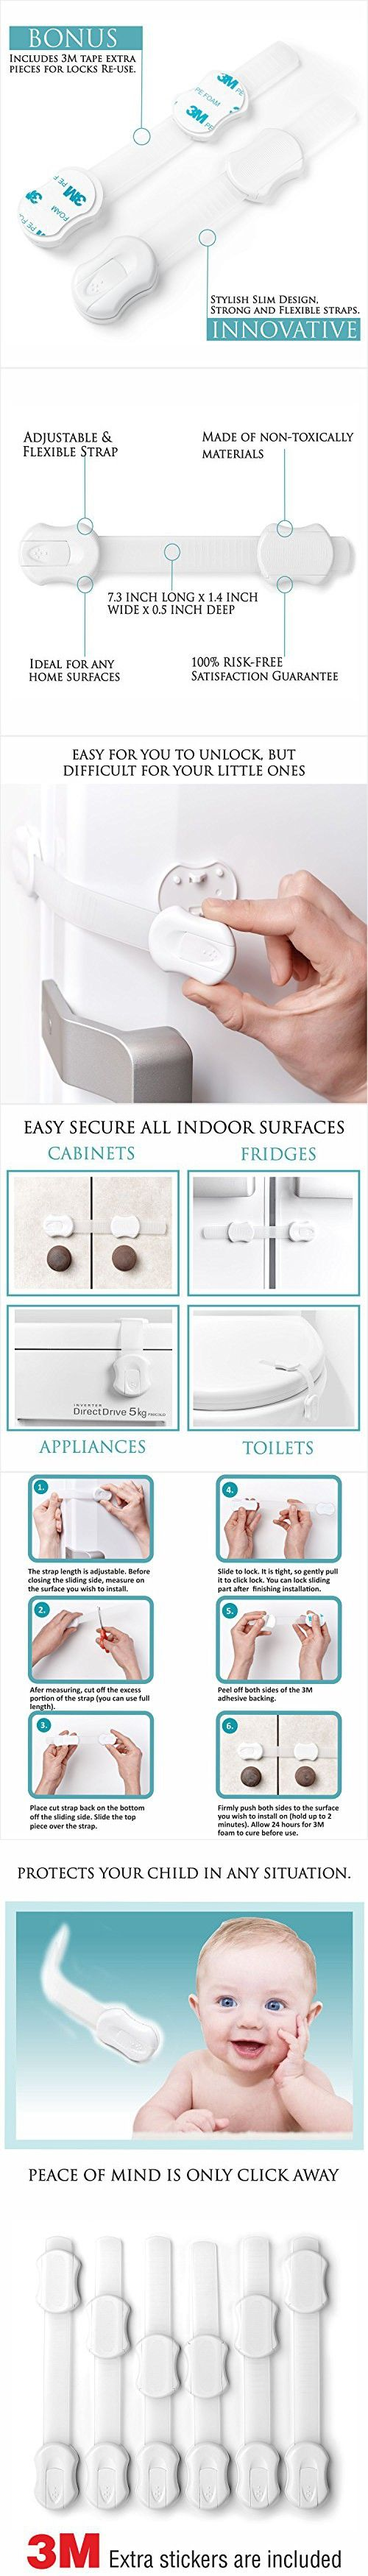 Set of 6 Child Safety Locks For Child Proofing - Easy & Well Protected Home for Baby - Baby Proofing Child Safety Latches - Strong Adhesive for Cupboards, Cabinets, Drawers, Fridges.